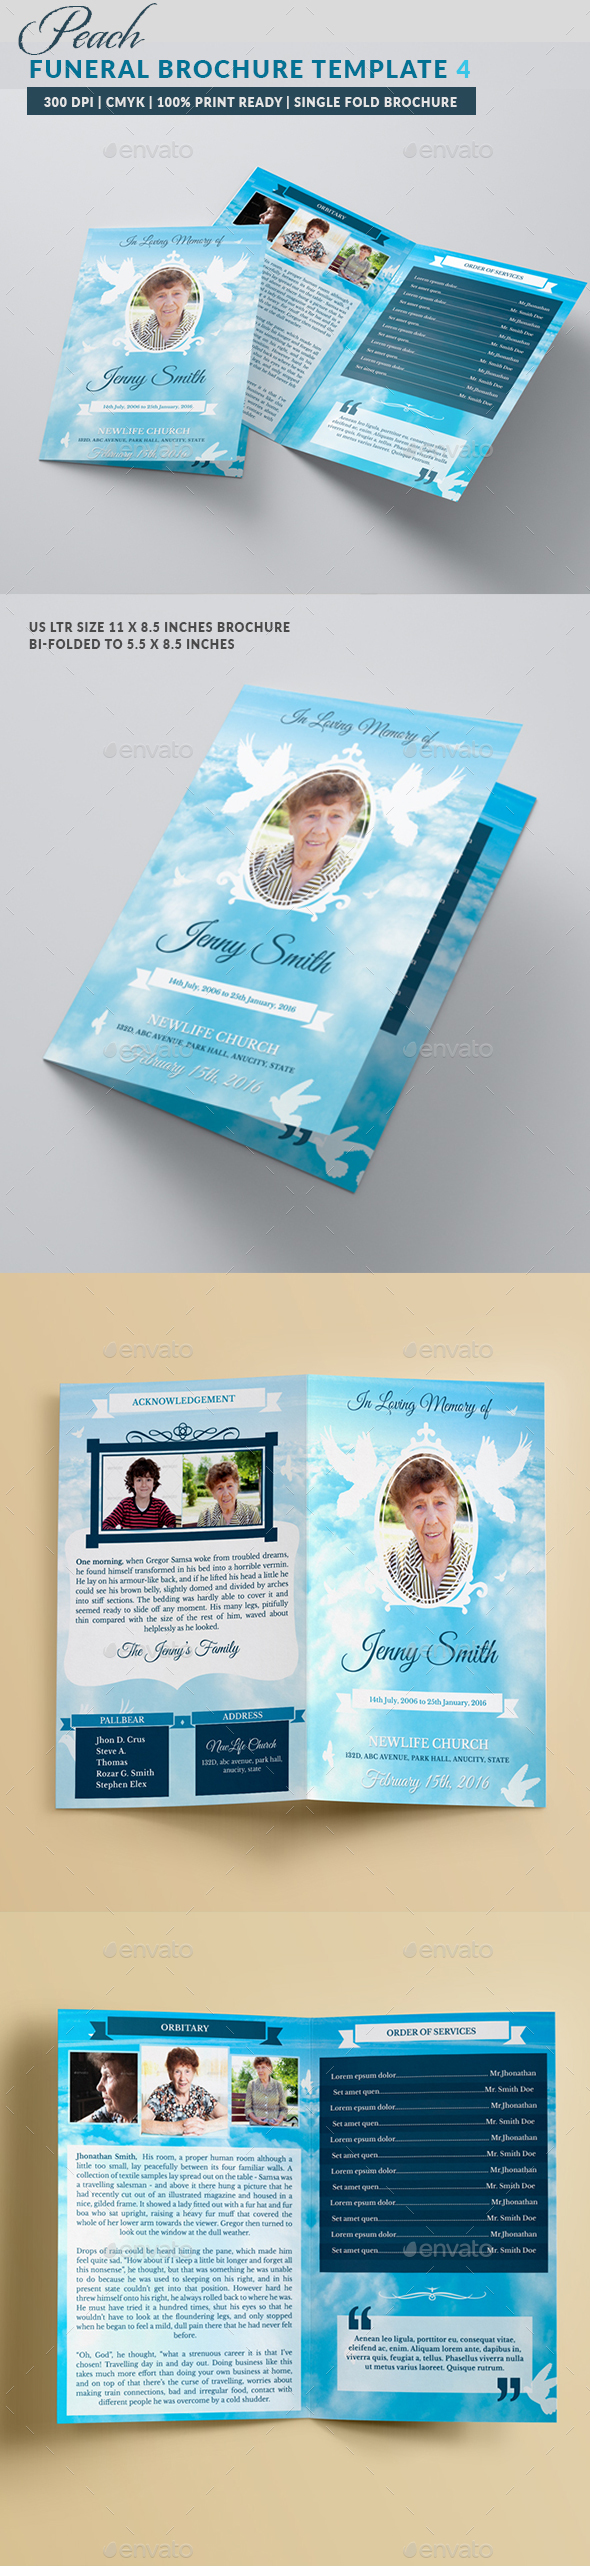 Peace Funeral Program Bifold Borchure Template  - Brochures Print Templates